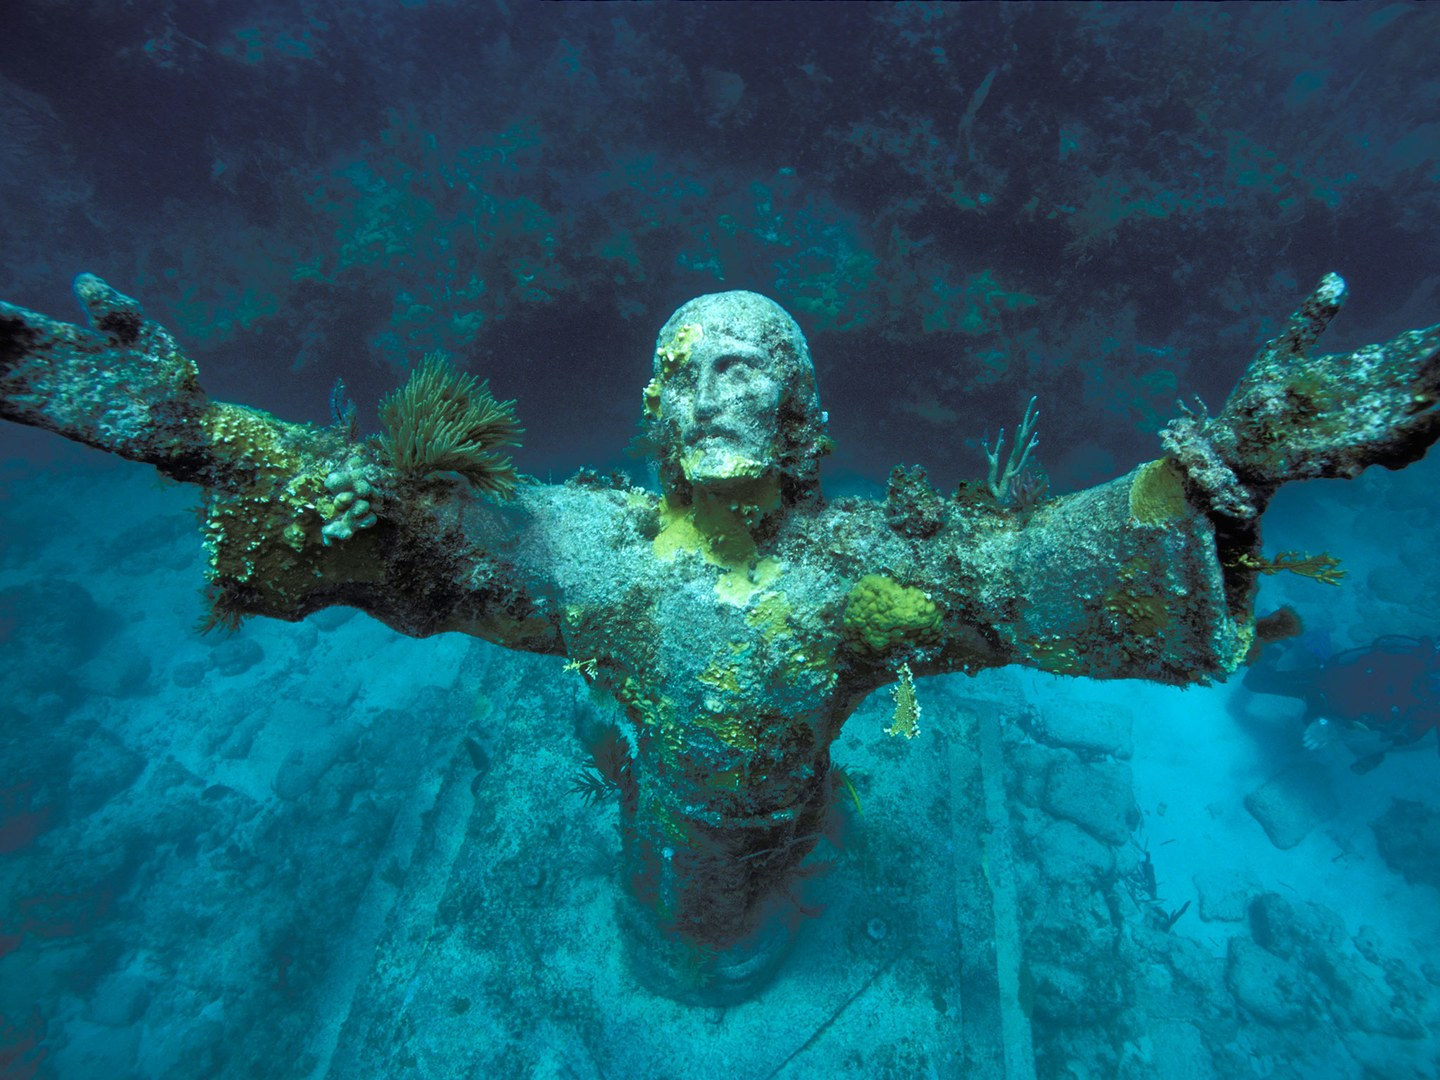 20 Architectural Scariest Places In The World - Christ of the Abyss San Fruttuoso Italy